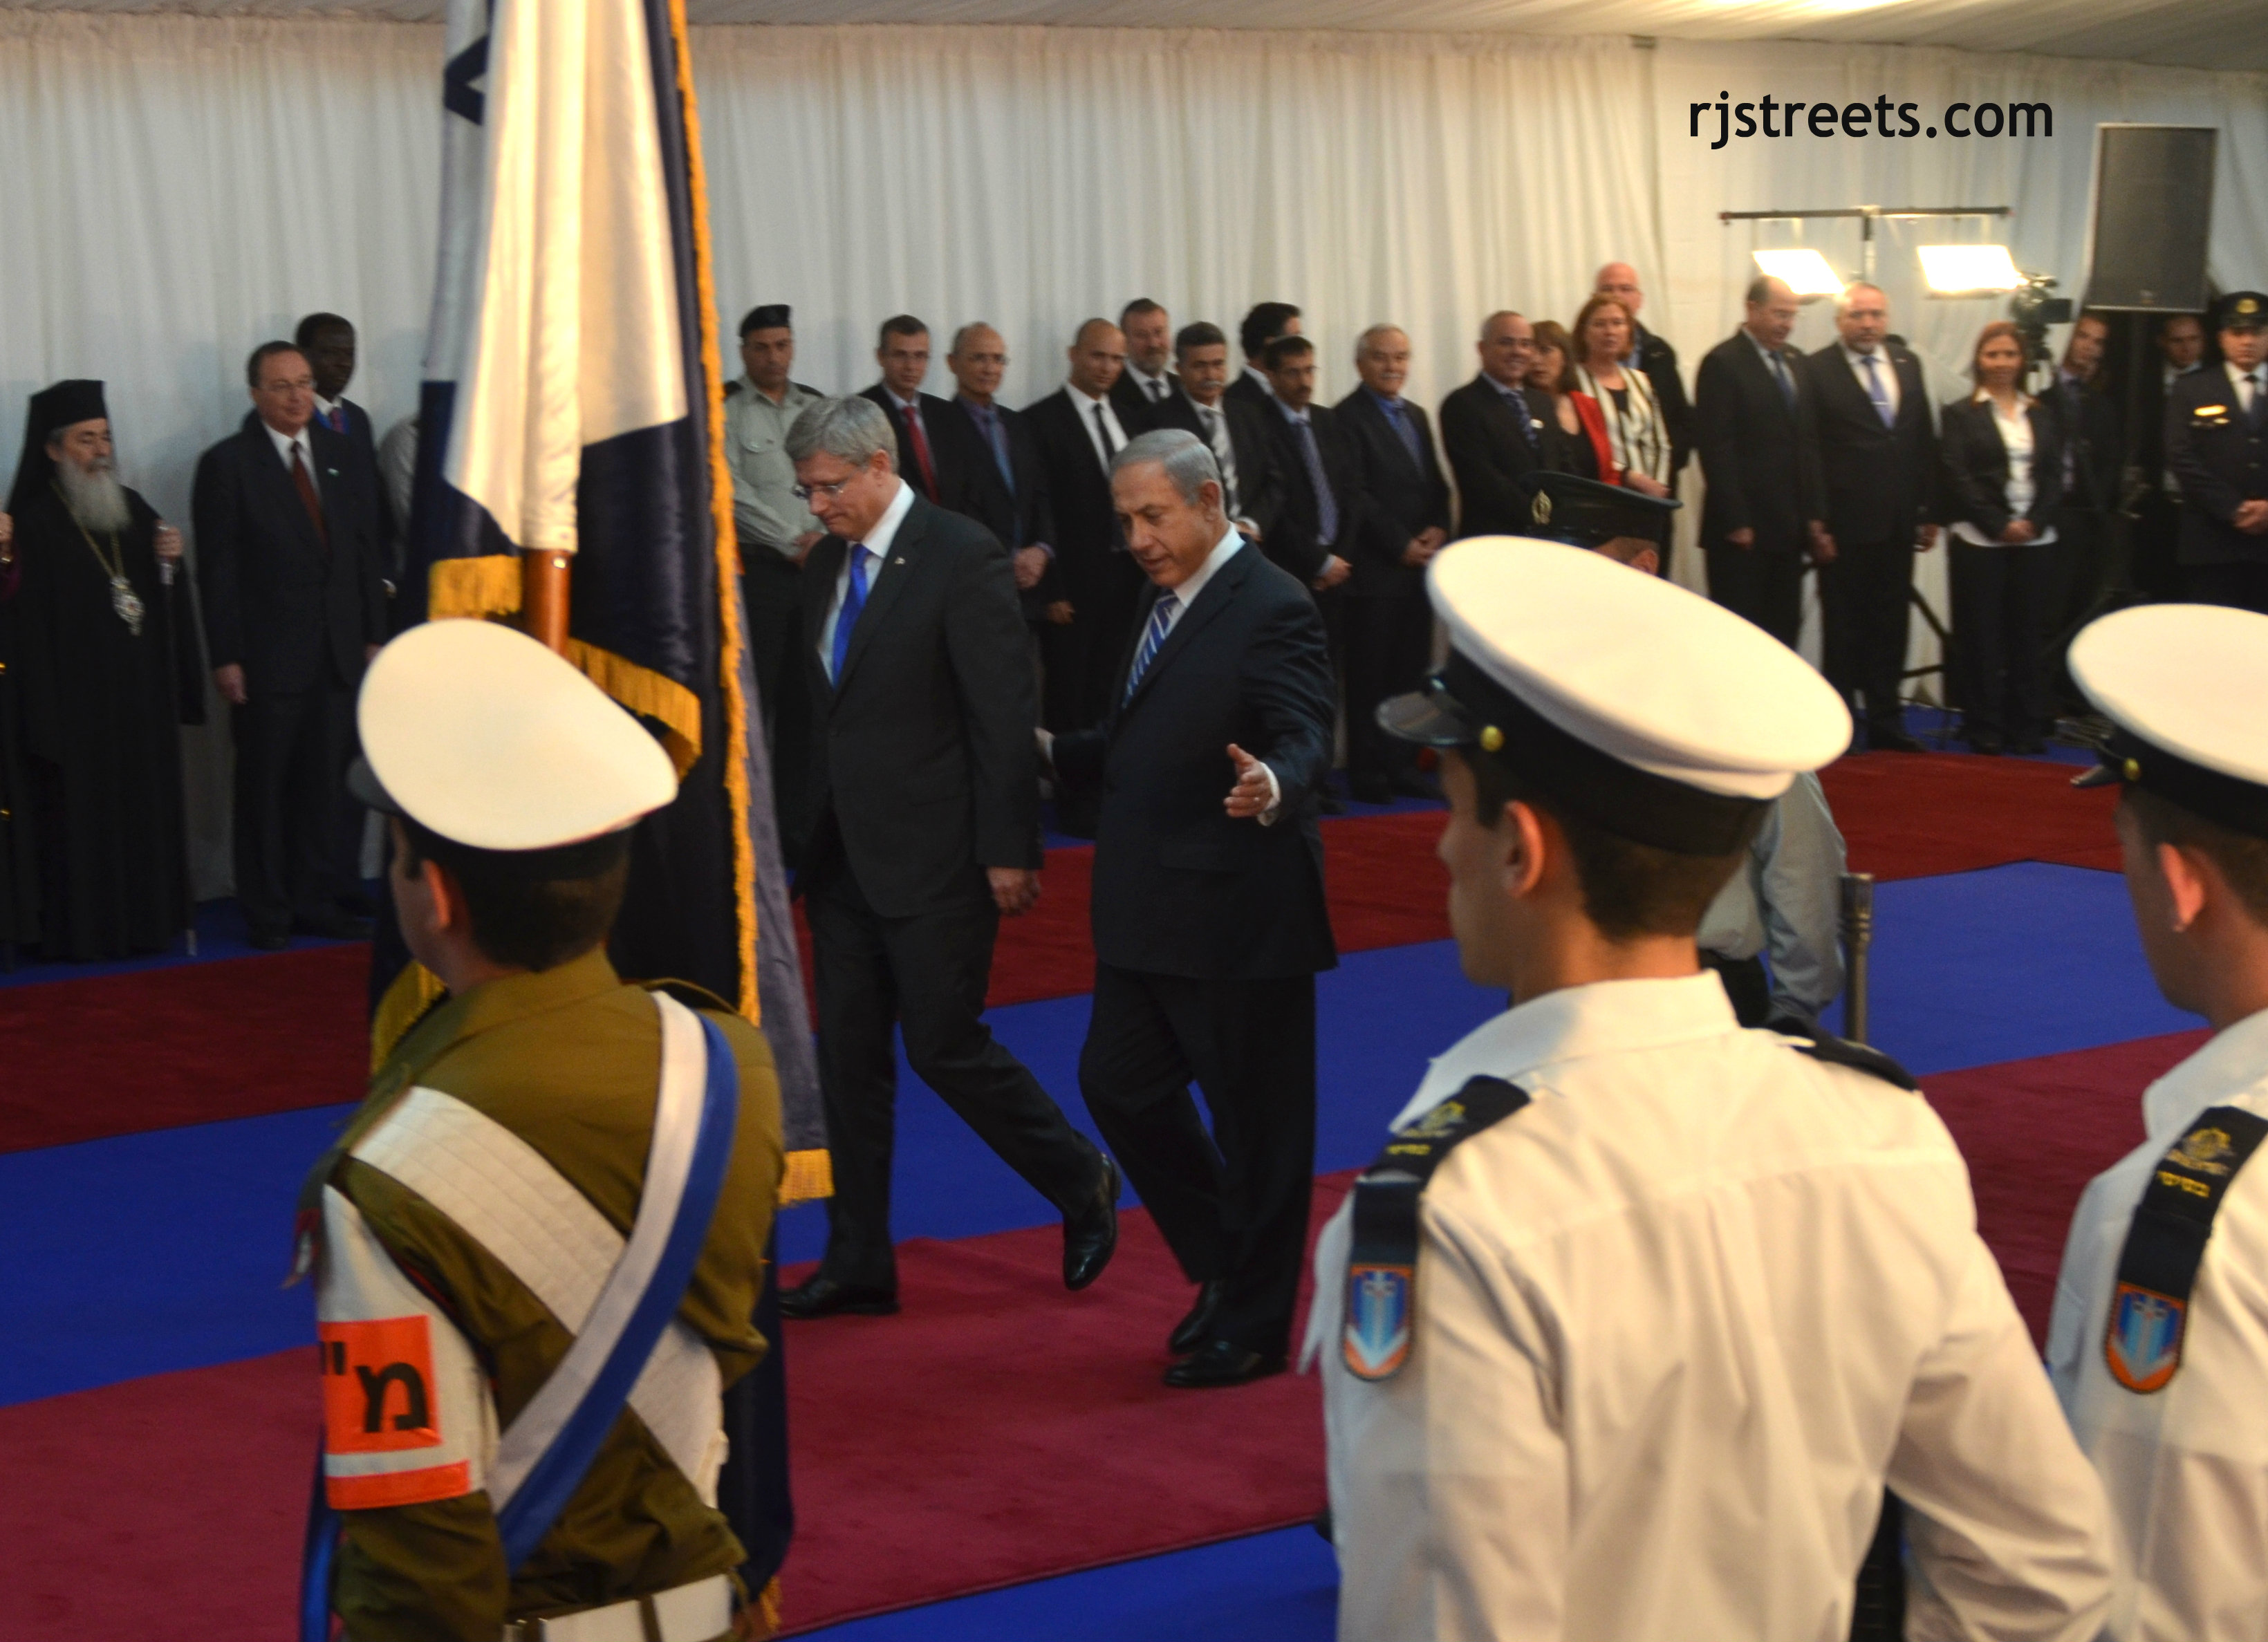 image red carpet welcome, photo red carpet for PM Harper, picture Bibi Netanyahu